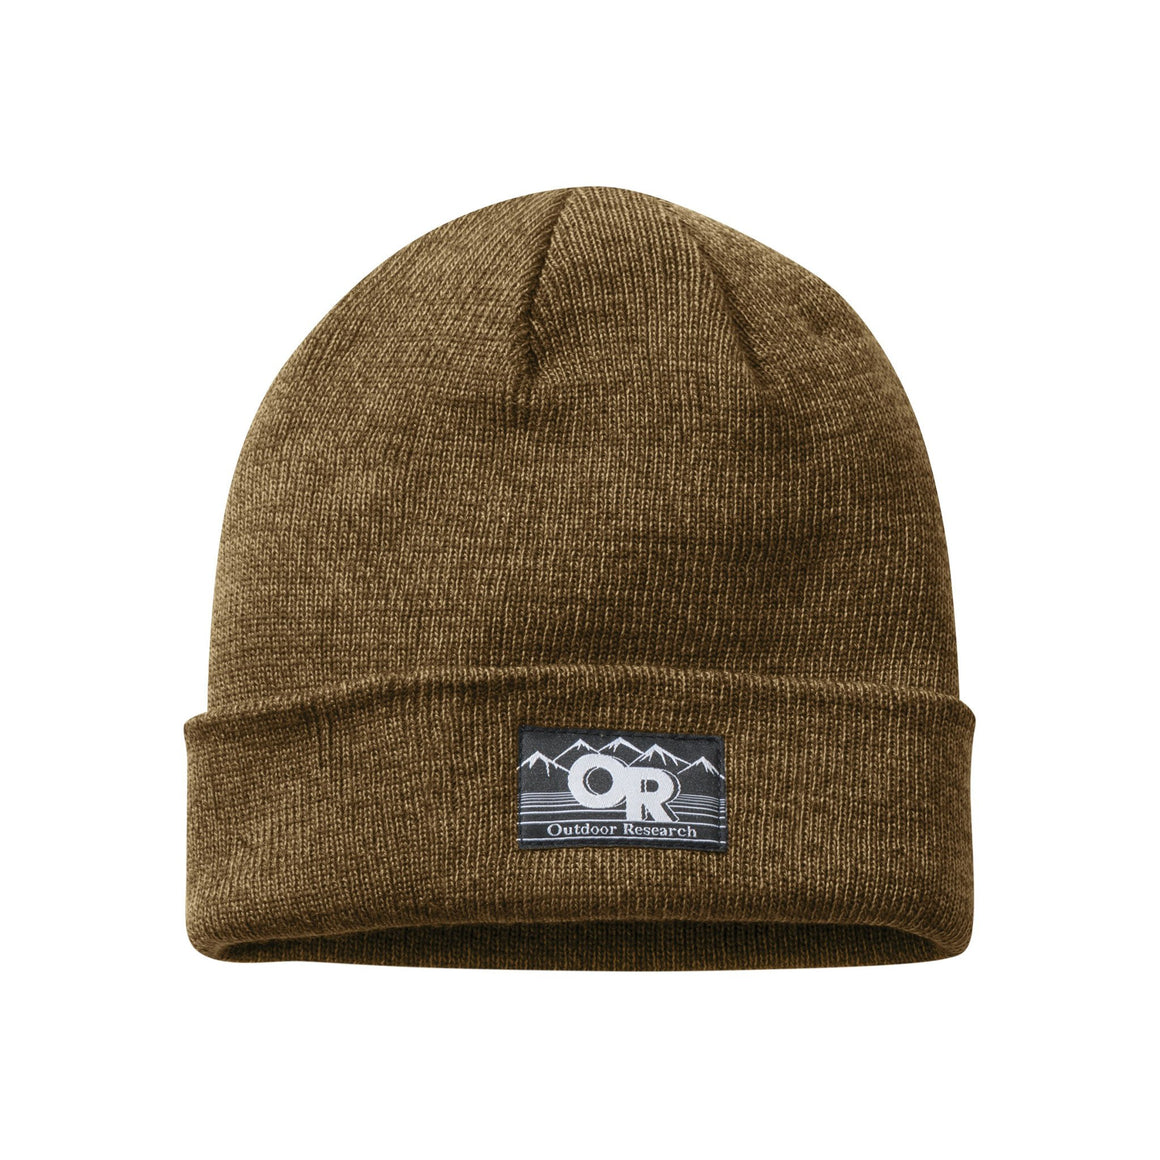 Outdoor Research Juneau Beanie - Unisex